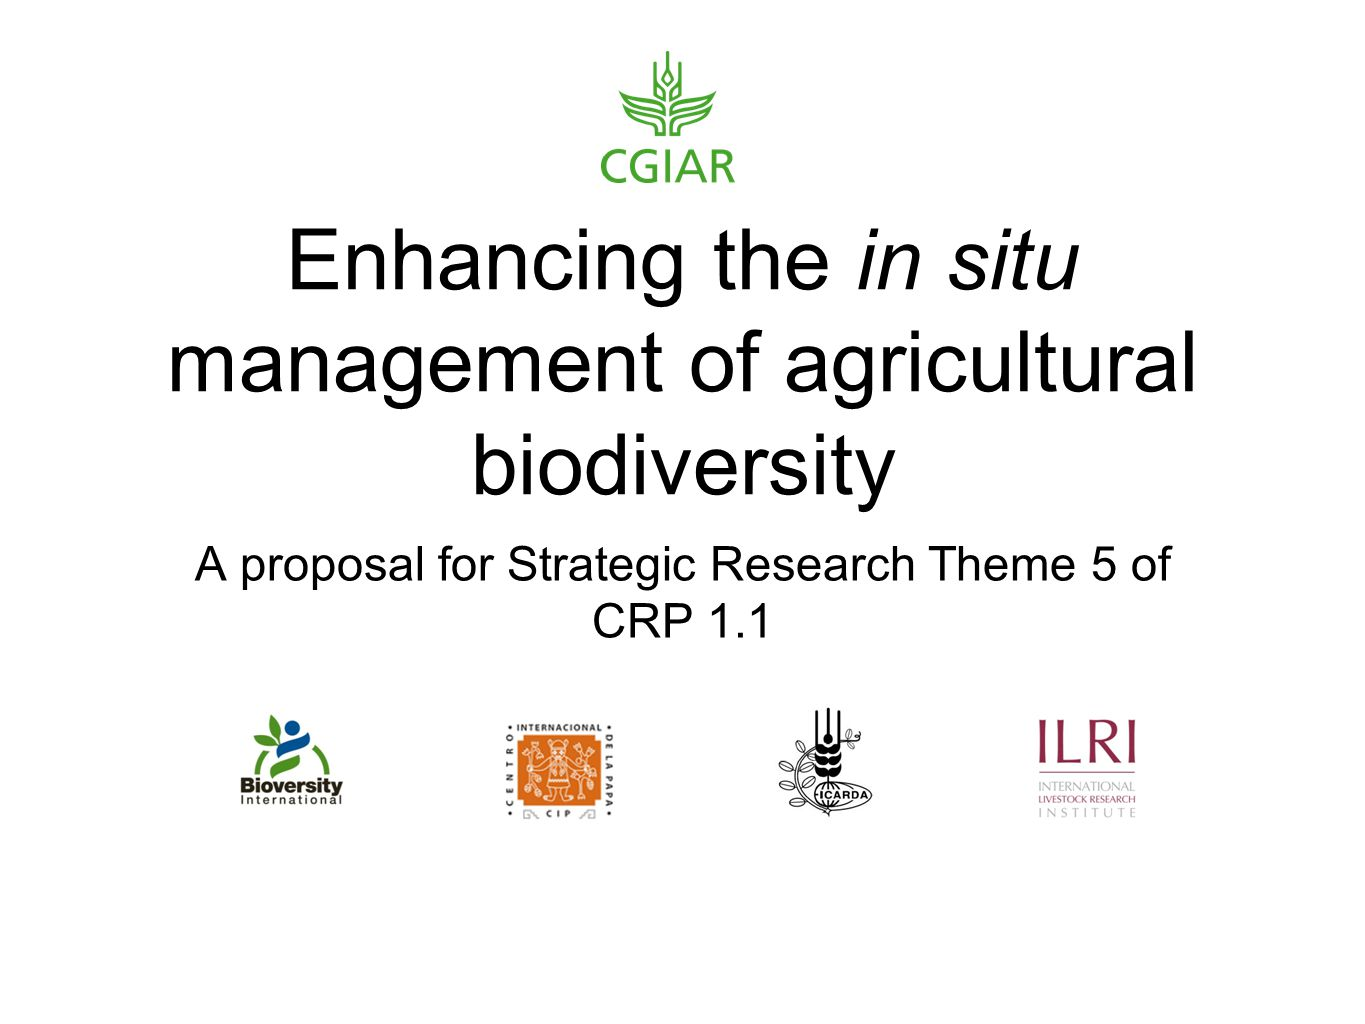 Enhancing the in situ management of agricultural biodiversity A proposal for Strategic Research Theme 5 of CRP 1.1